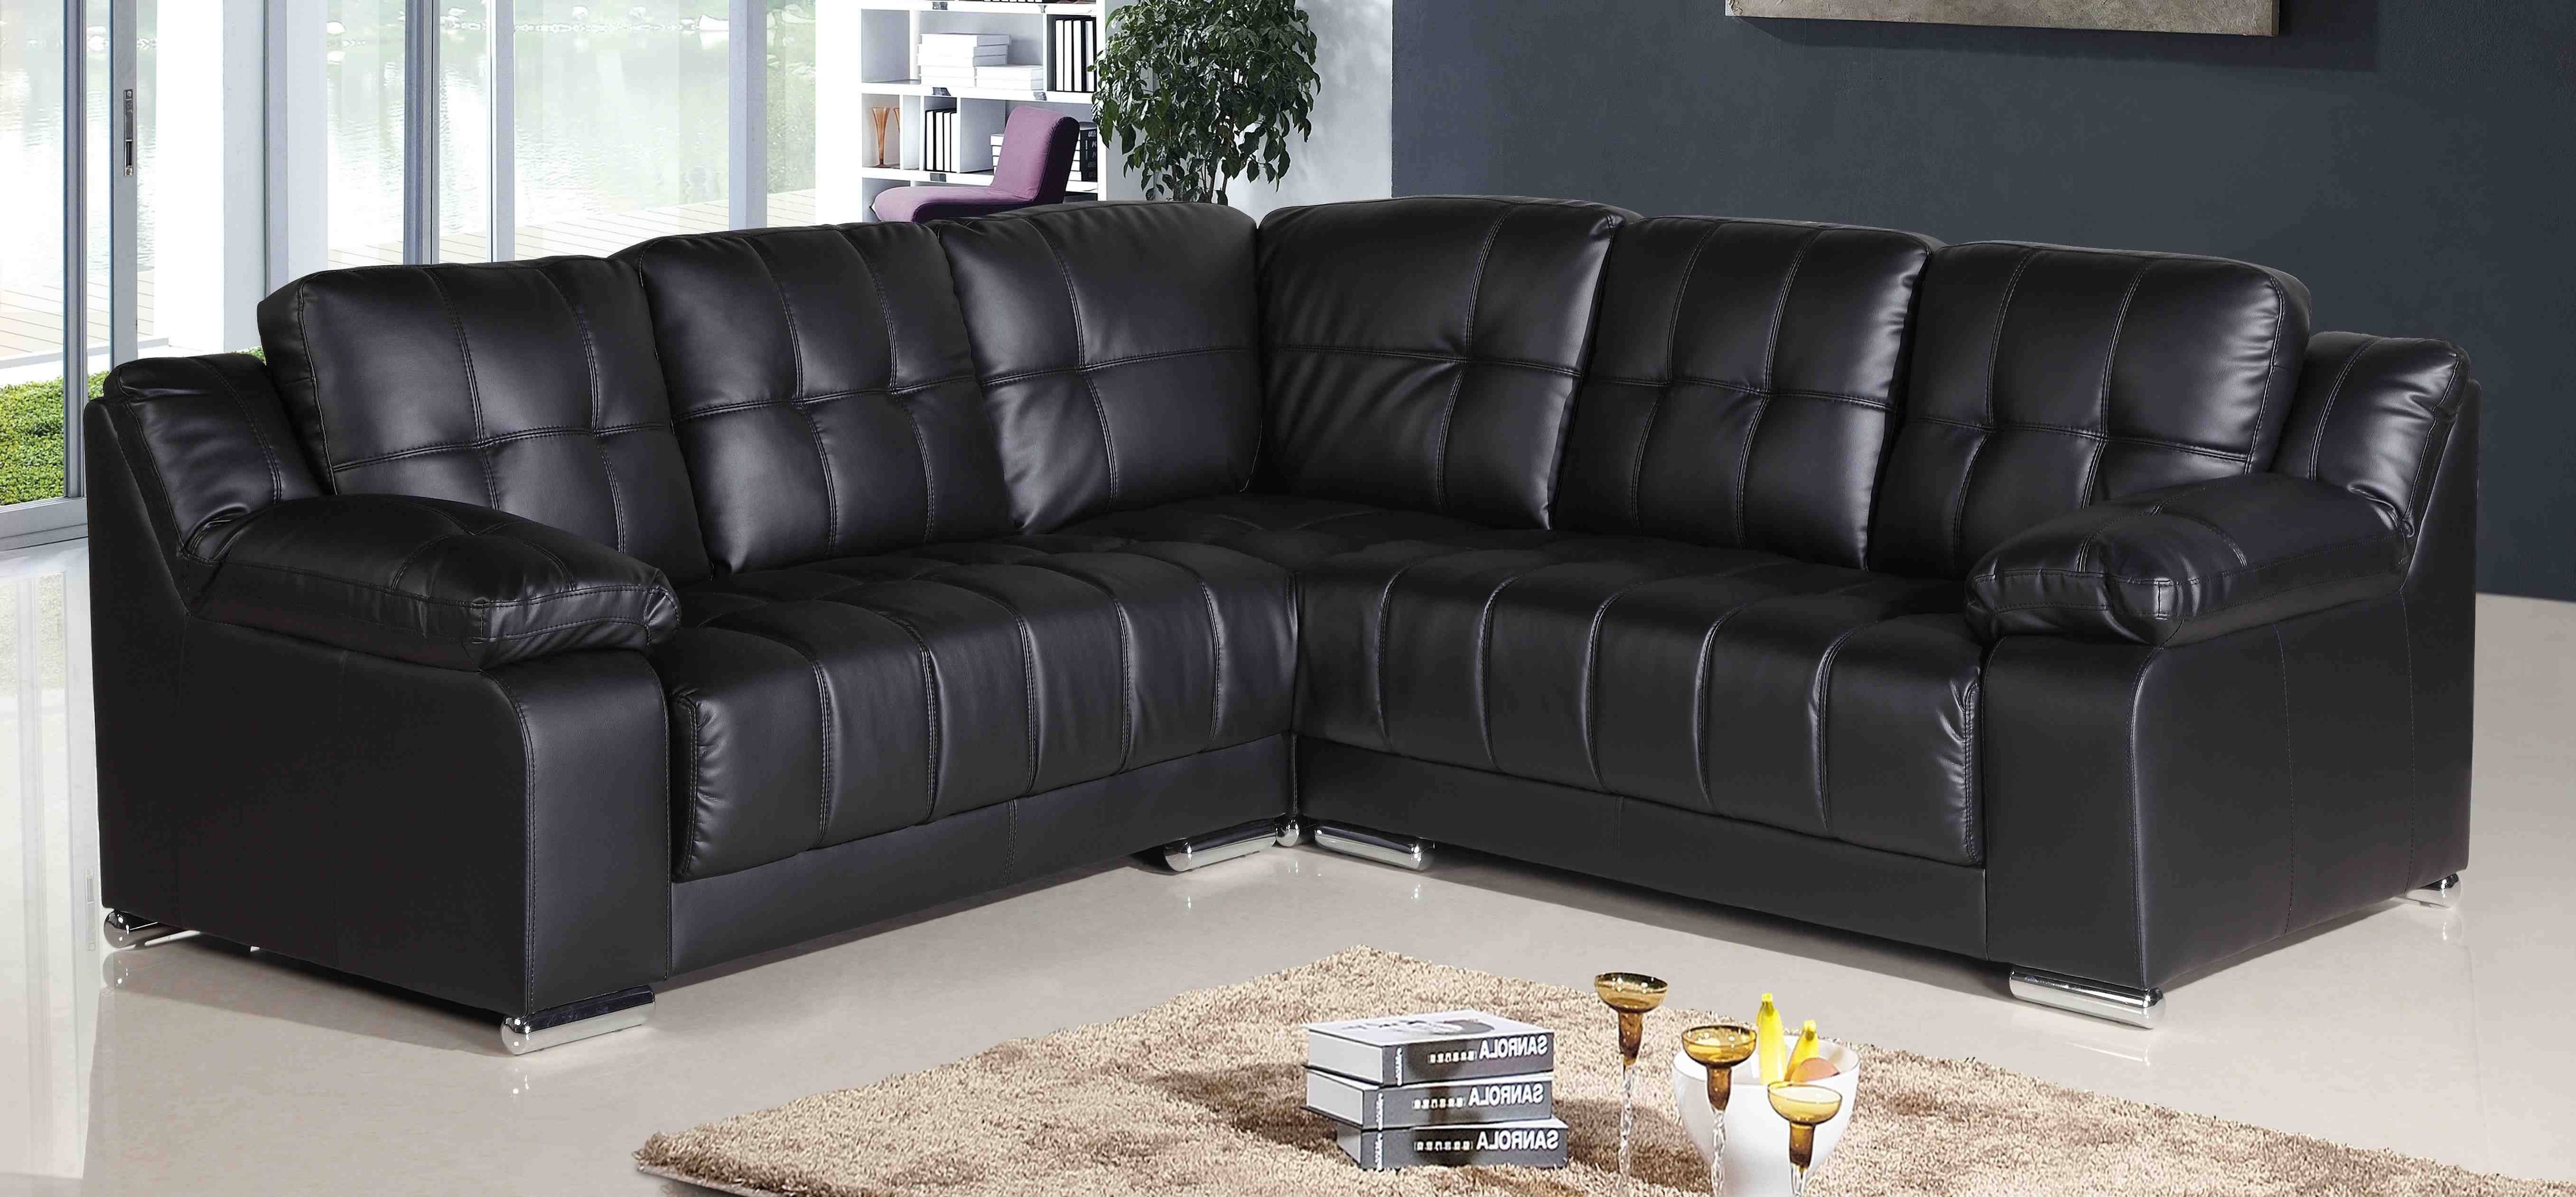 Furniture: Clearance Sectional Sofas For Elegant Living Room regarding Leather Sofa Sectionals For Sale (Image 5 of 30)